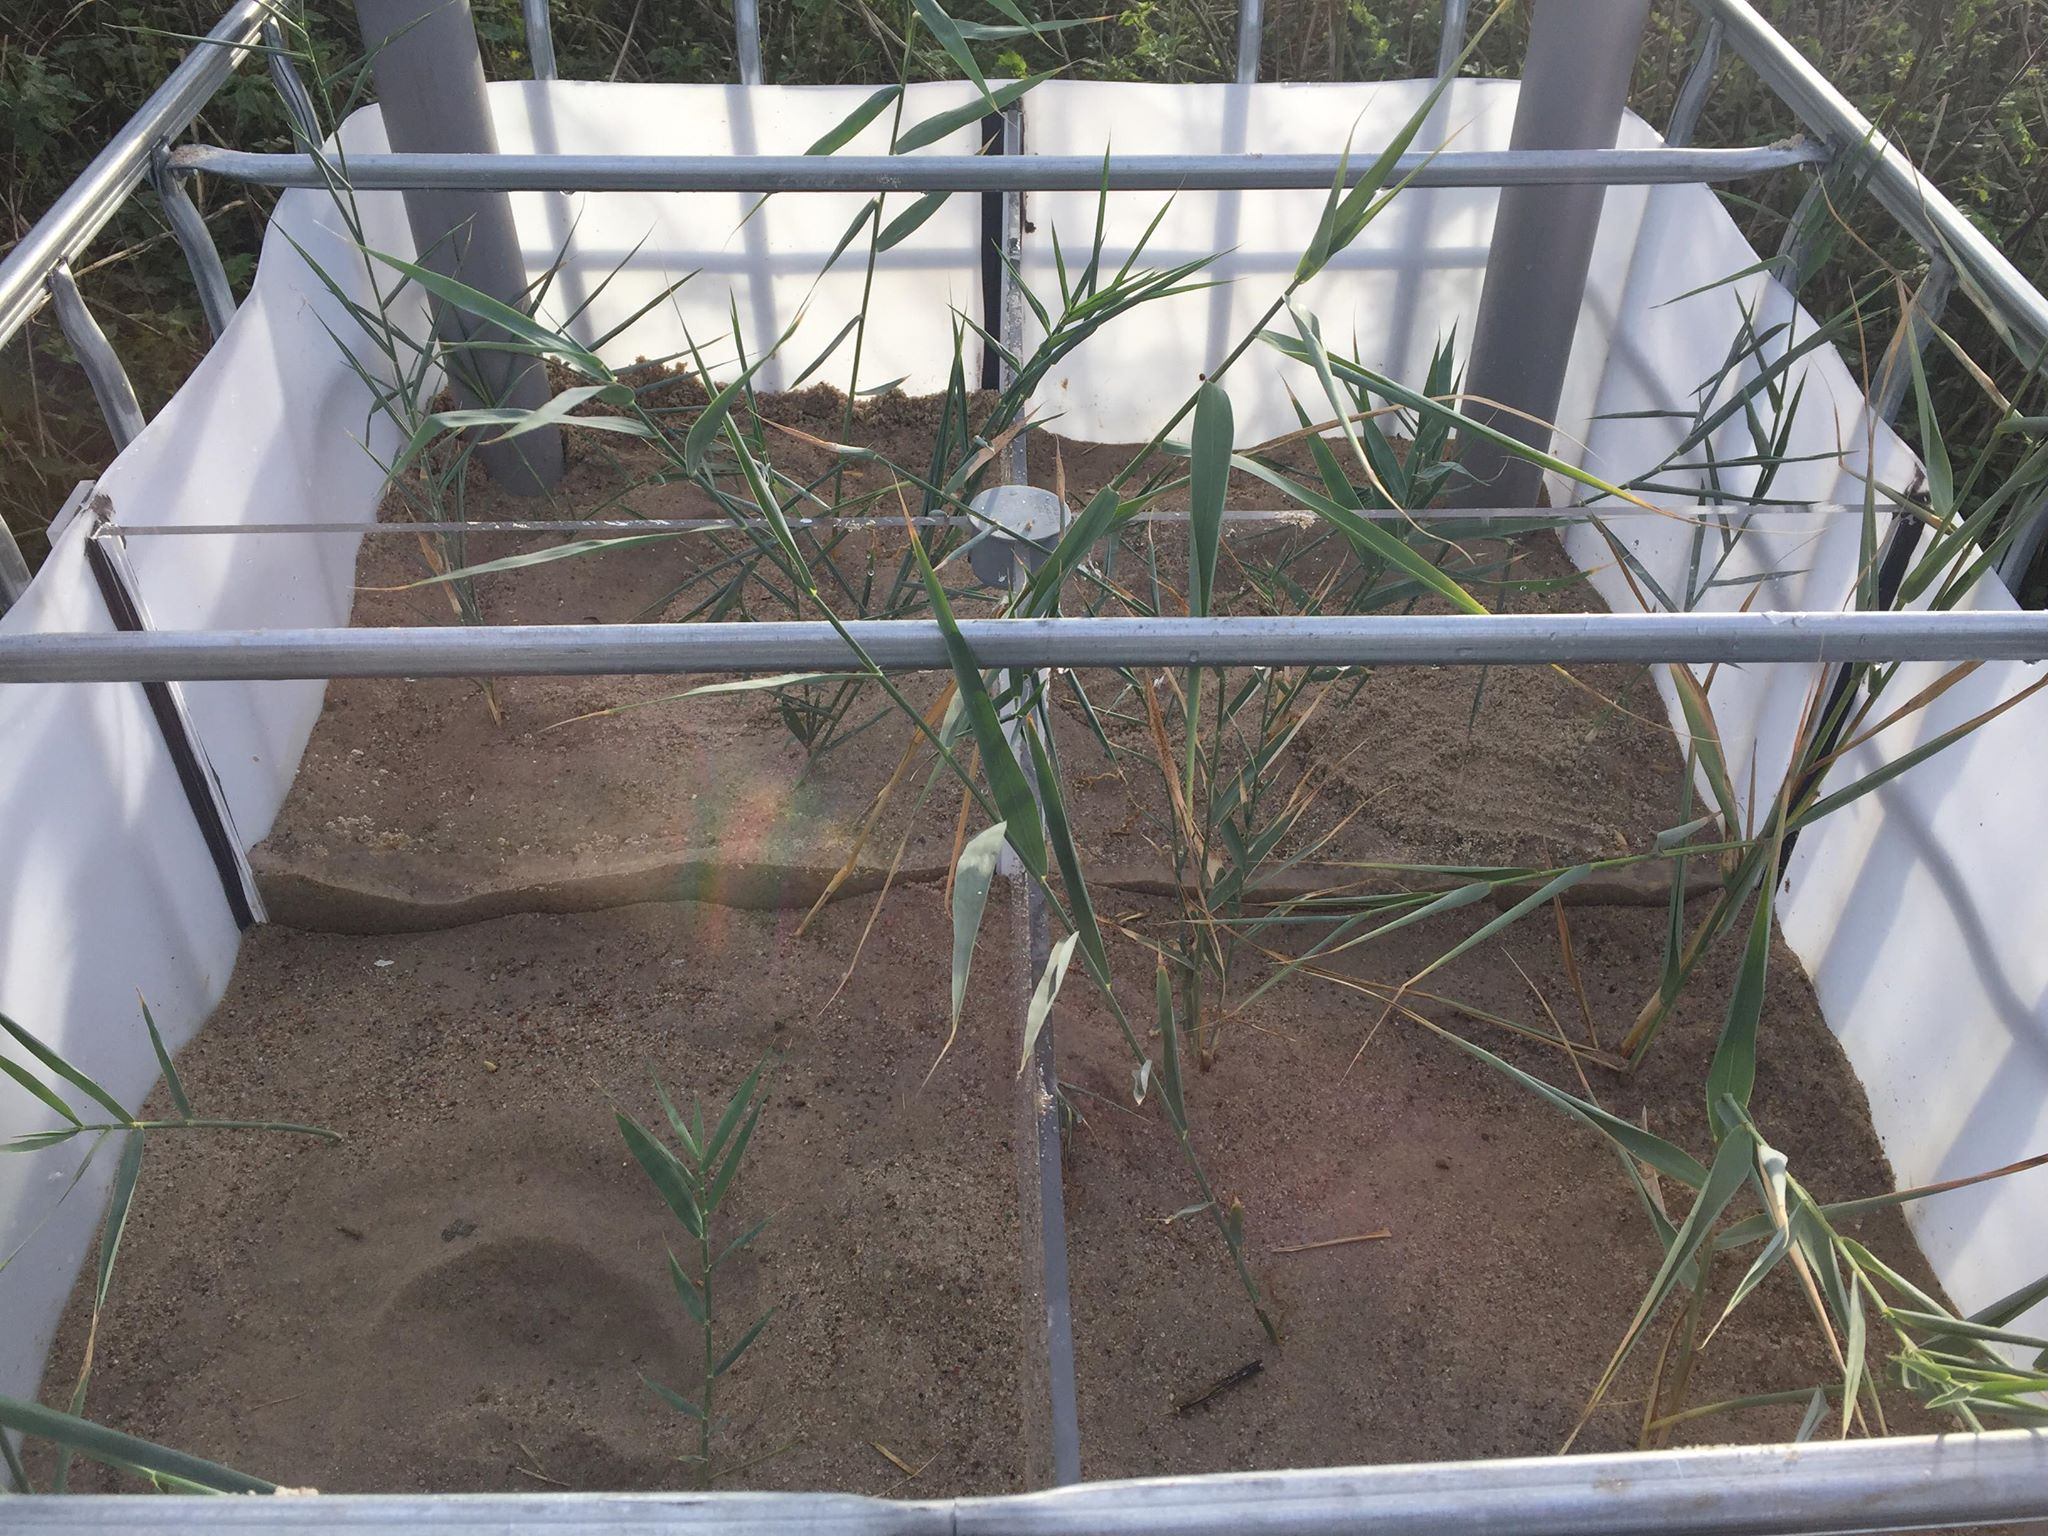 Cane growing in a box with sand.